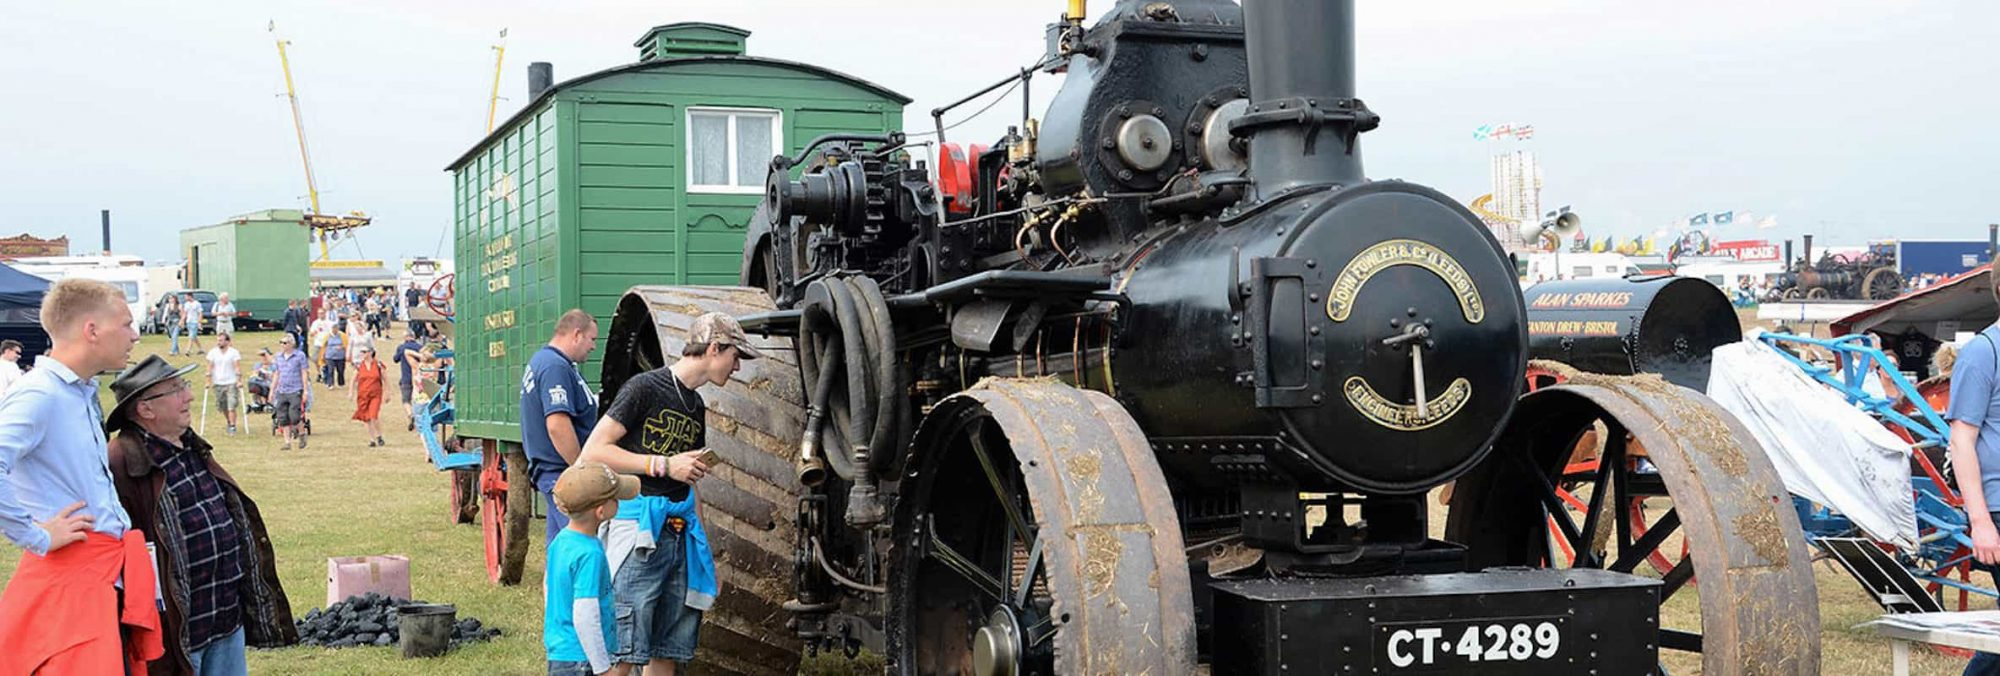 Great-Dorset-Steam-Fair-Steam-Exhibitions-&-Demonstrations-10